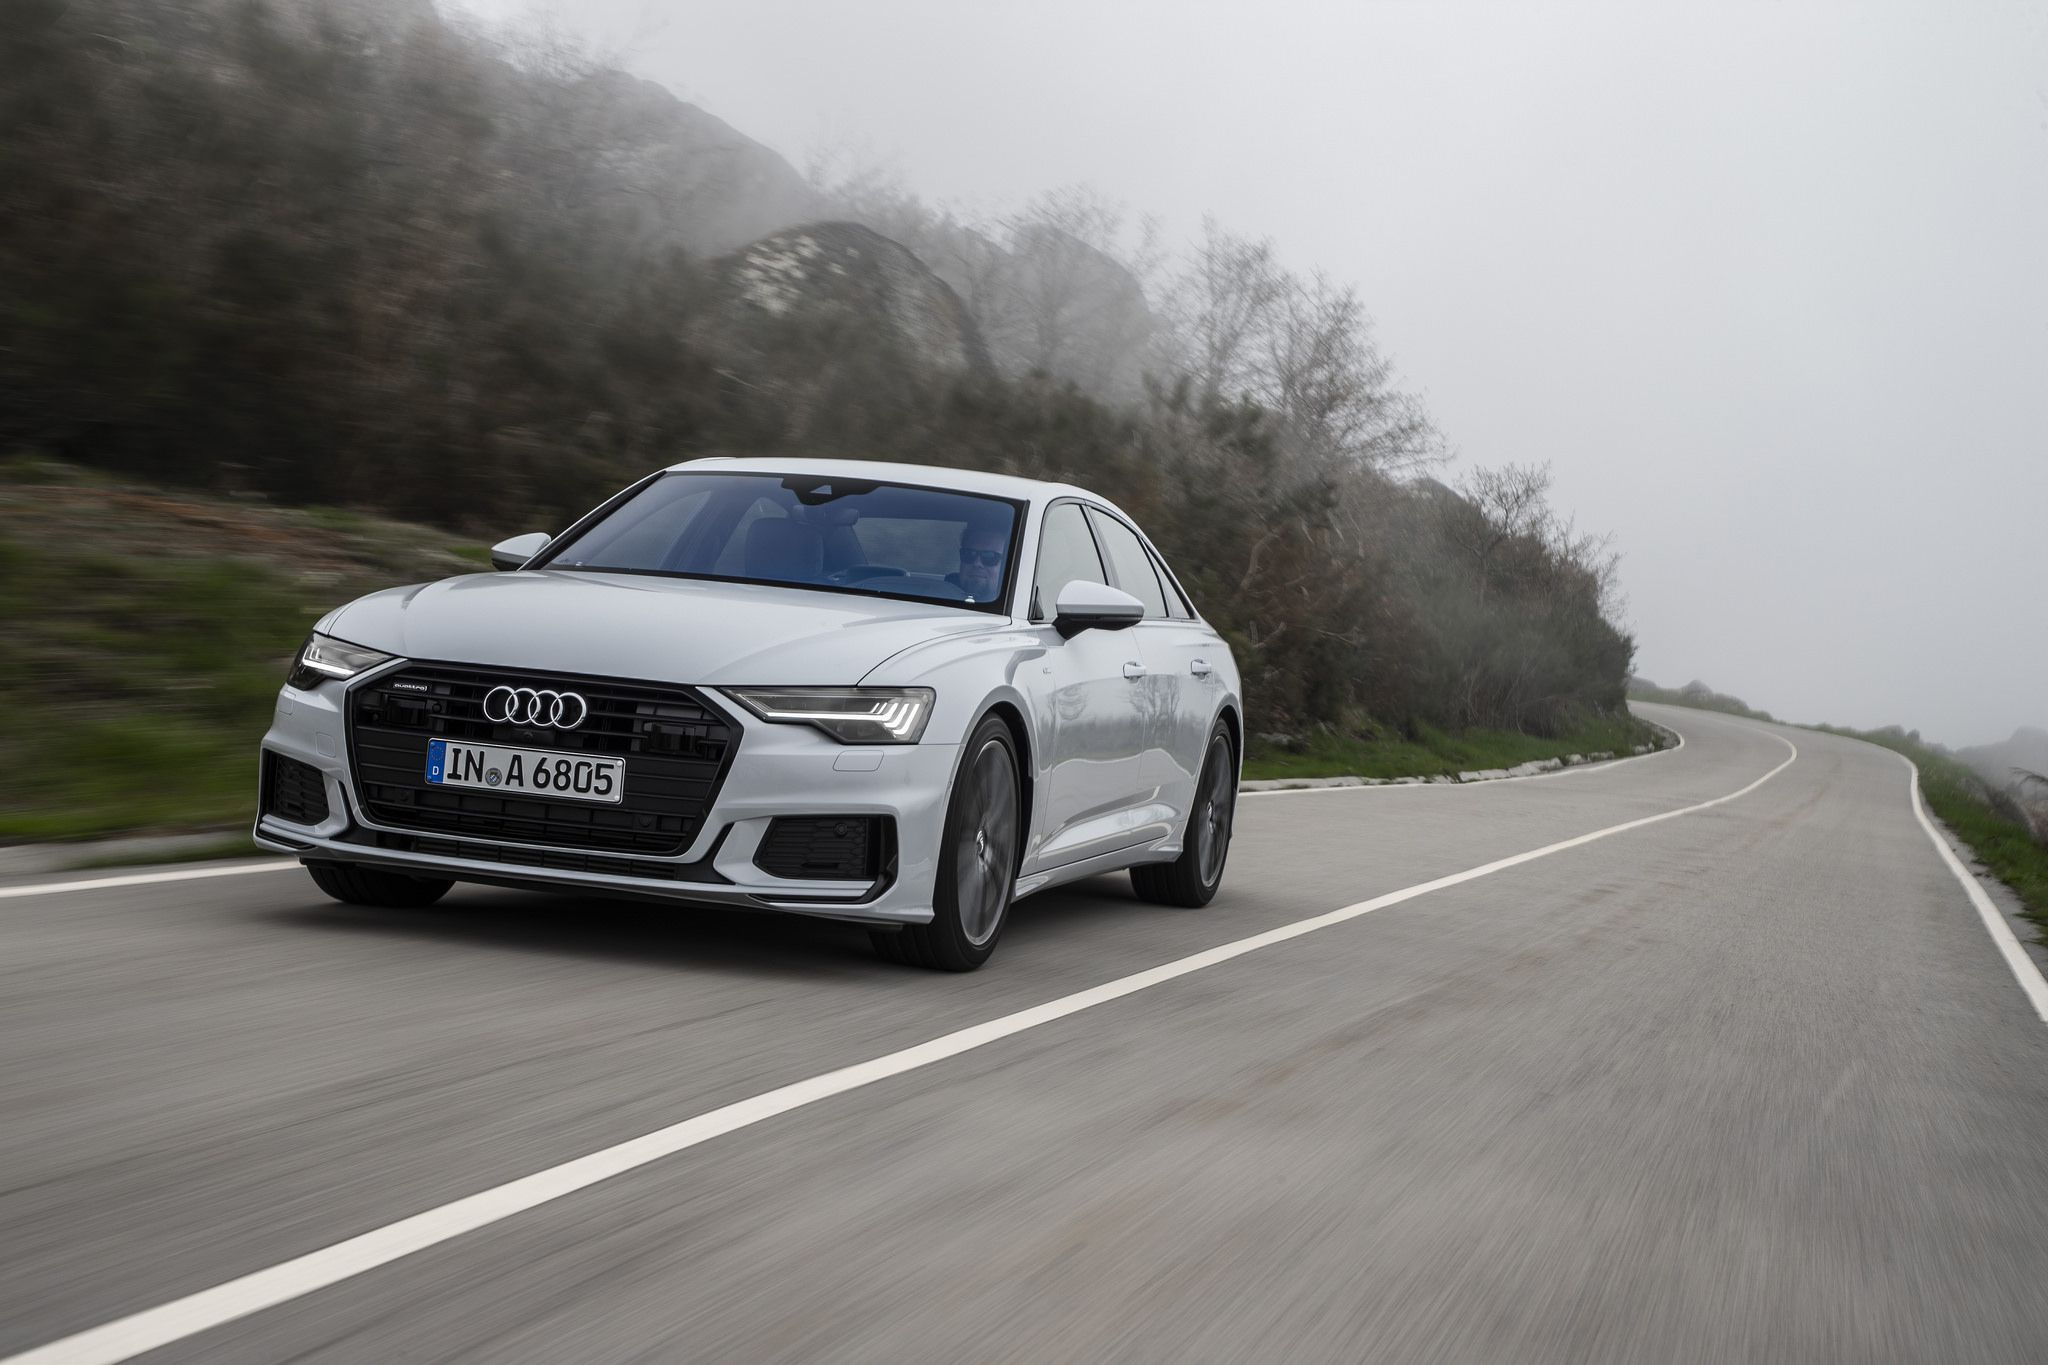 2019 Audi A6 at speed